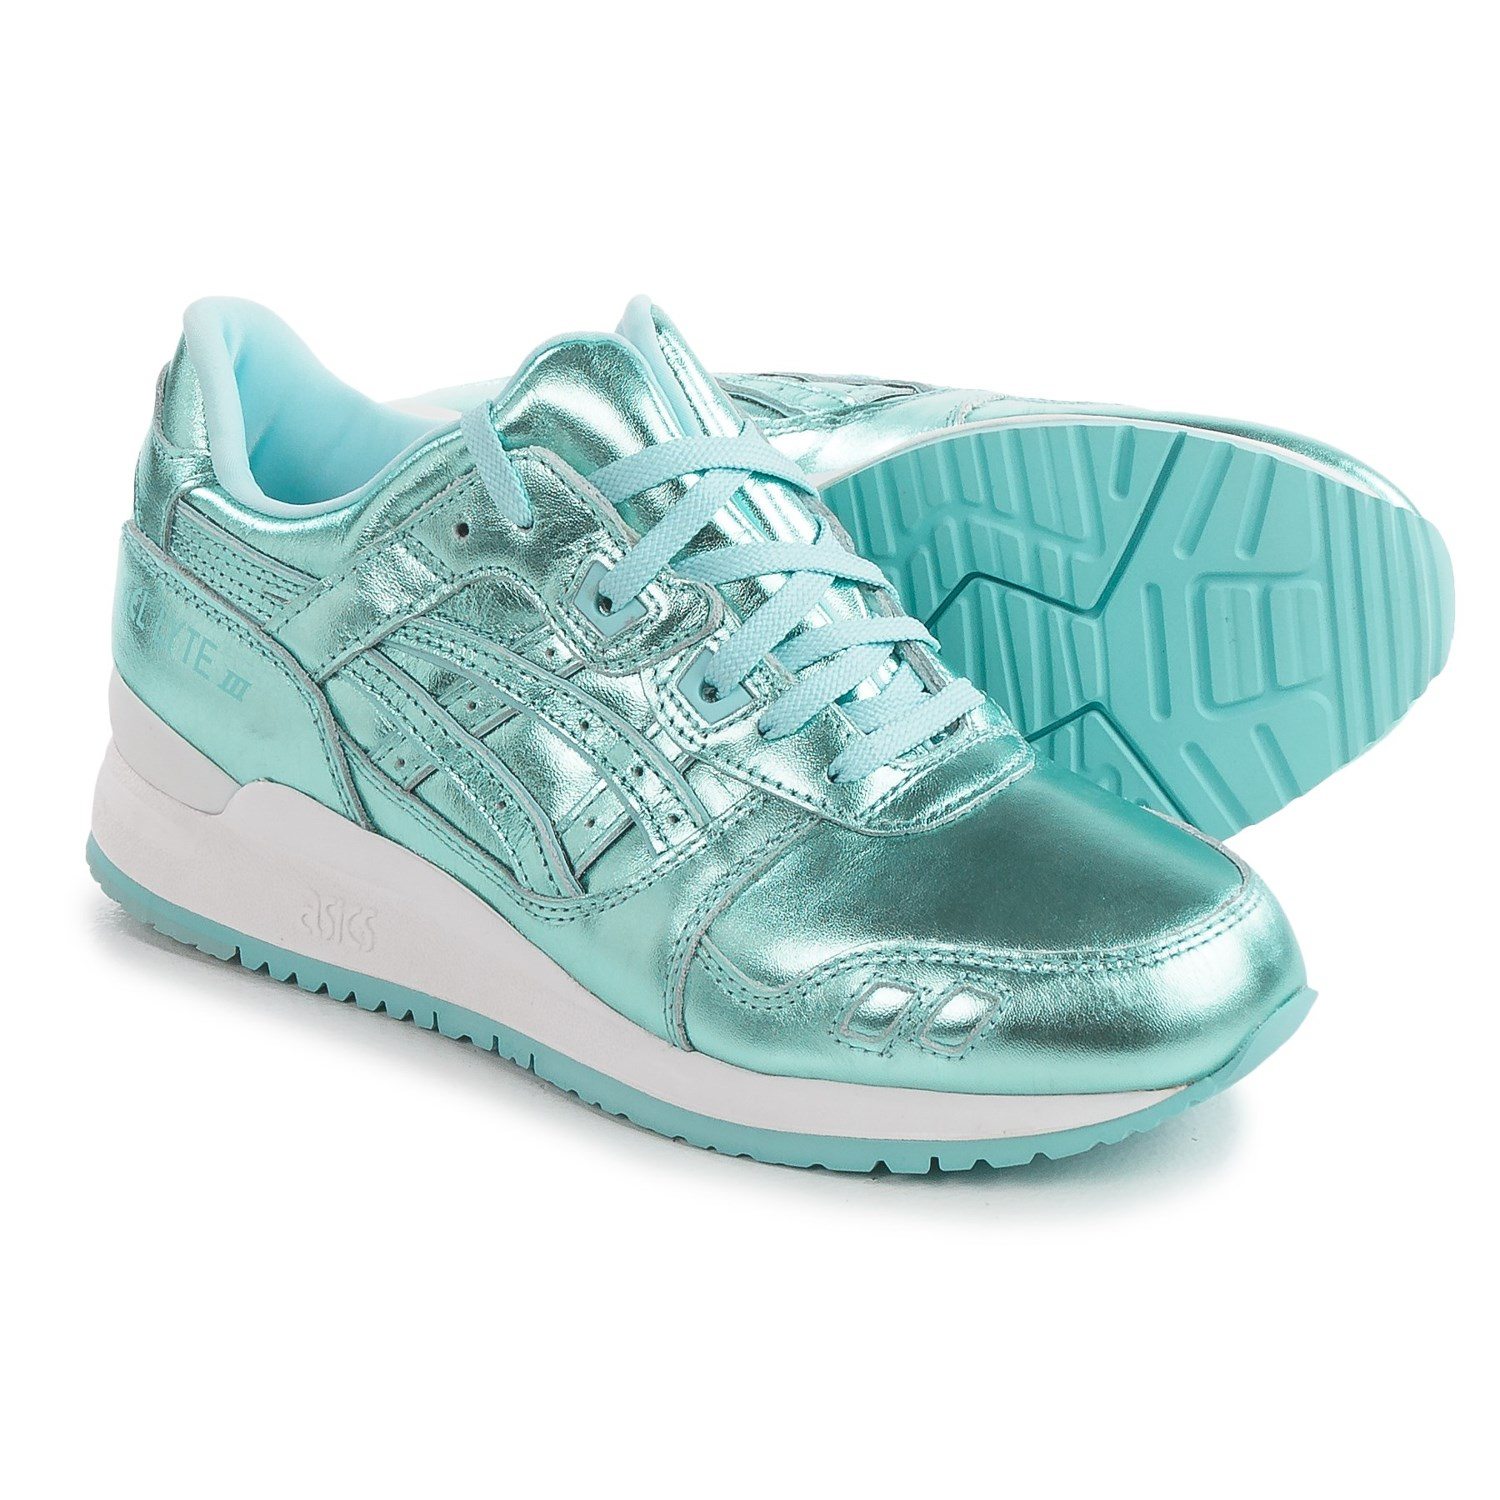 asics clearance outlet hh9z  ASICS GEL-Lyte III Sneakers